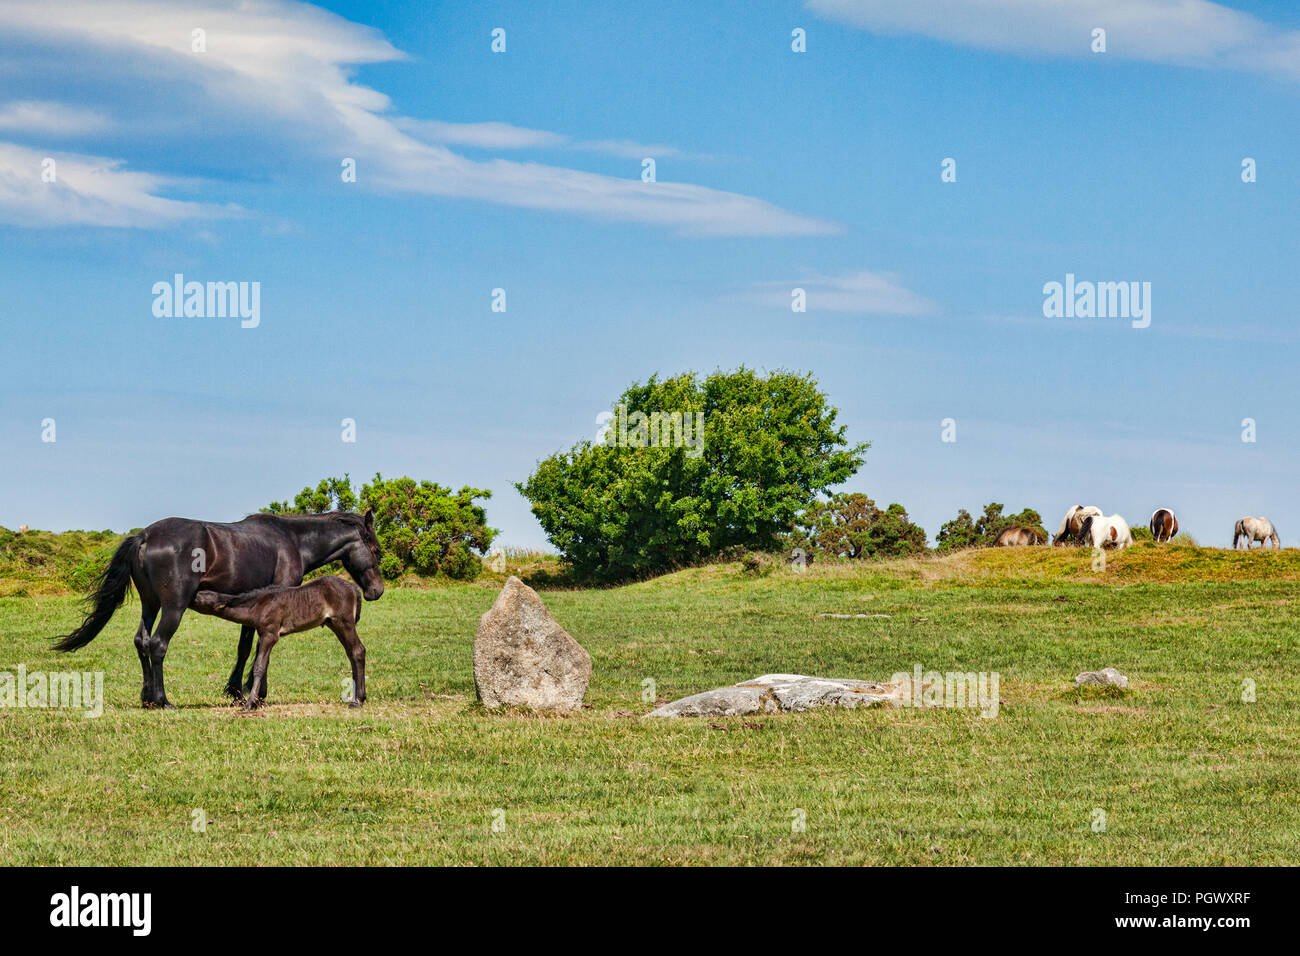 Wild ponies grazing on Bodmin Moor at The Hurlers stone circlre near Minions, the highest village in Cornwall,  with mare feeding foal, Cornwall, UK. Stock Photo